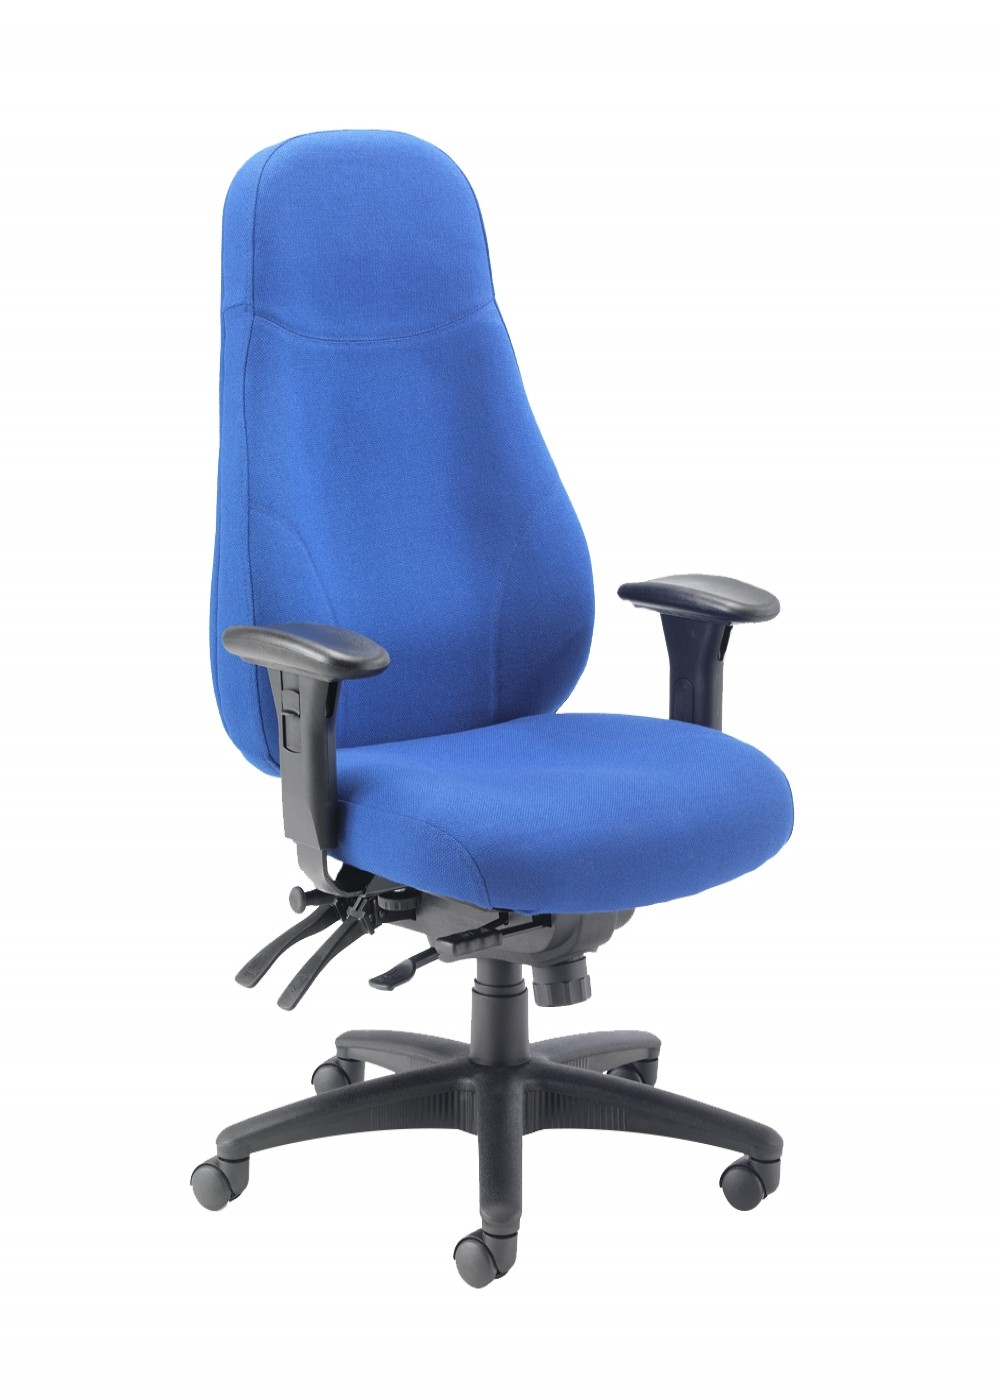 tc cheetah high back office chair ch1111ma | 121 office furniture